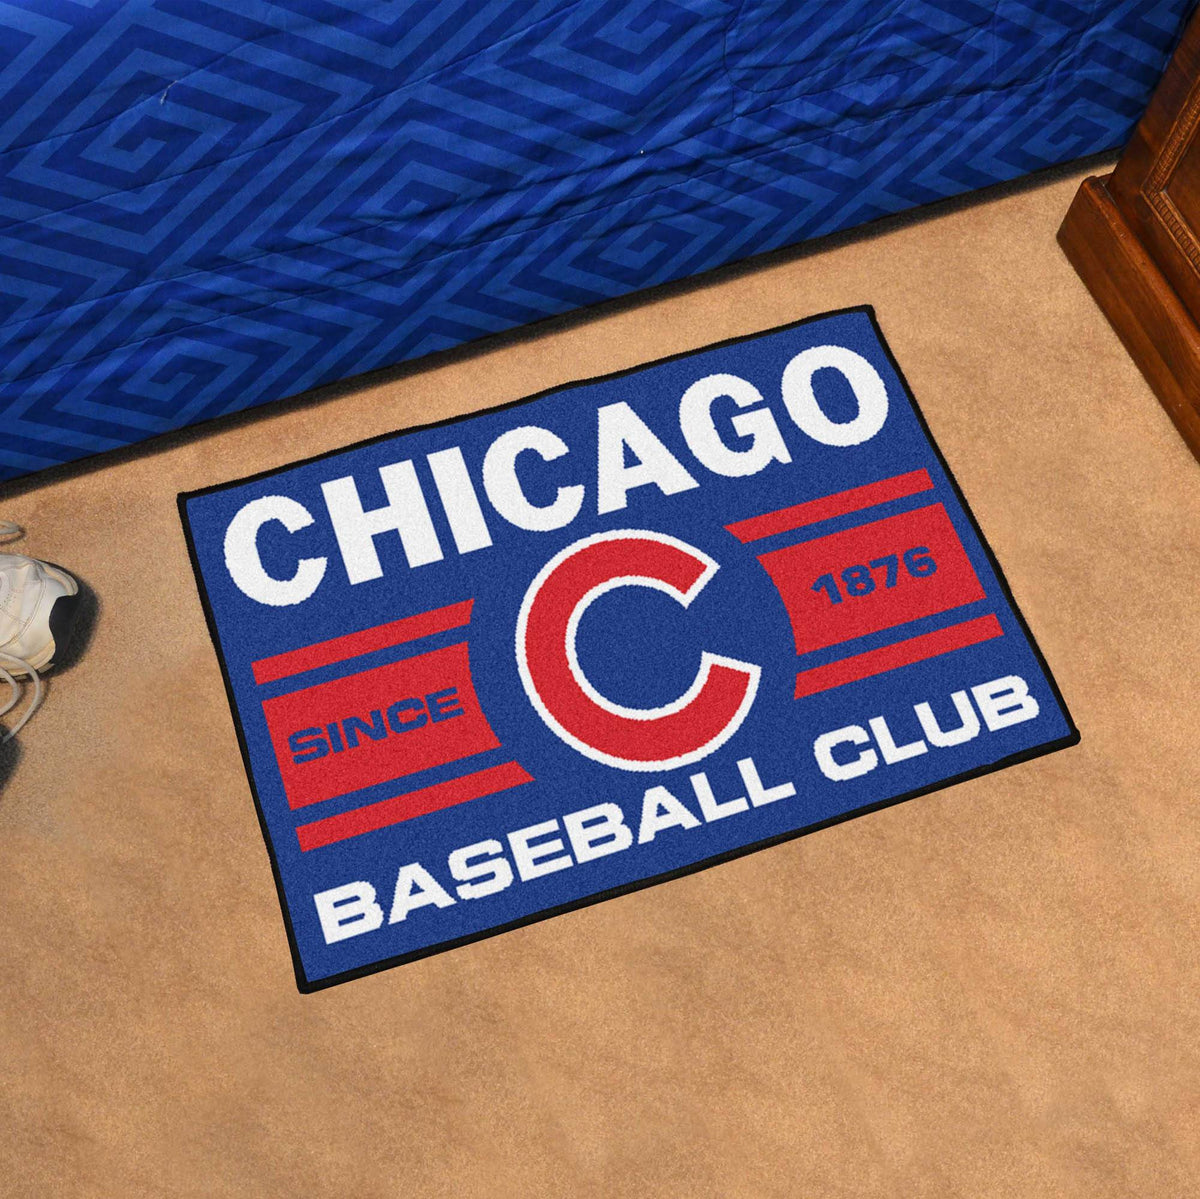 MLB - Uniform Starter Mat MLB Mats, Rectangular Mats, Uniform Starter Mat, MLB, Home Fan Mats Chicago Cubs